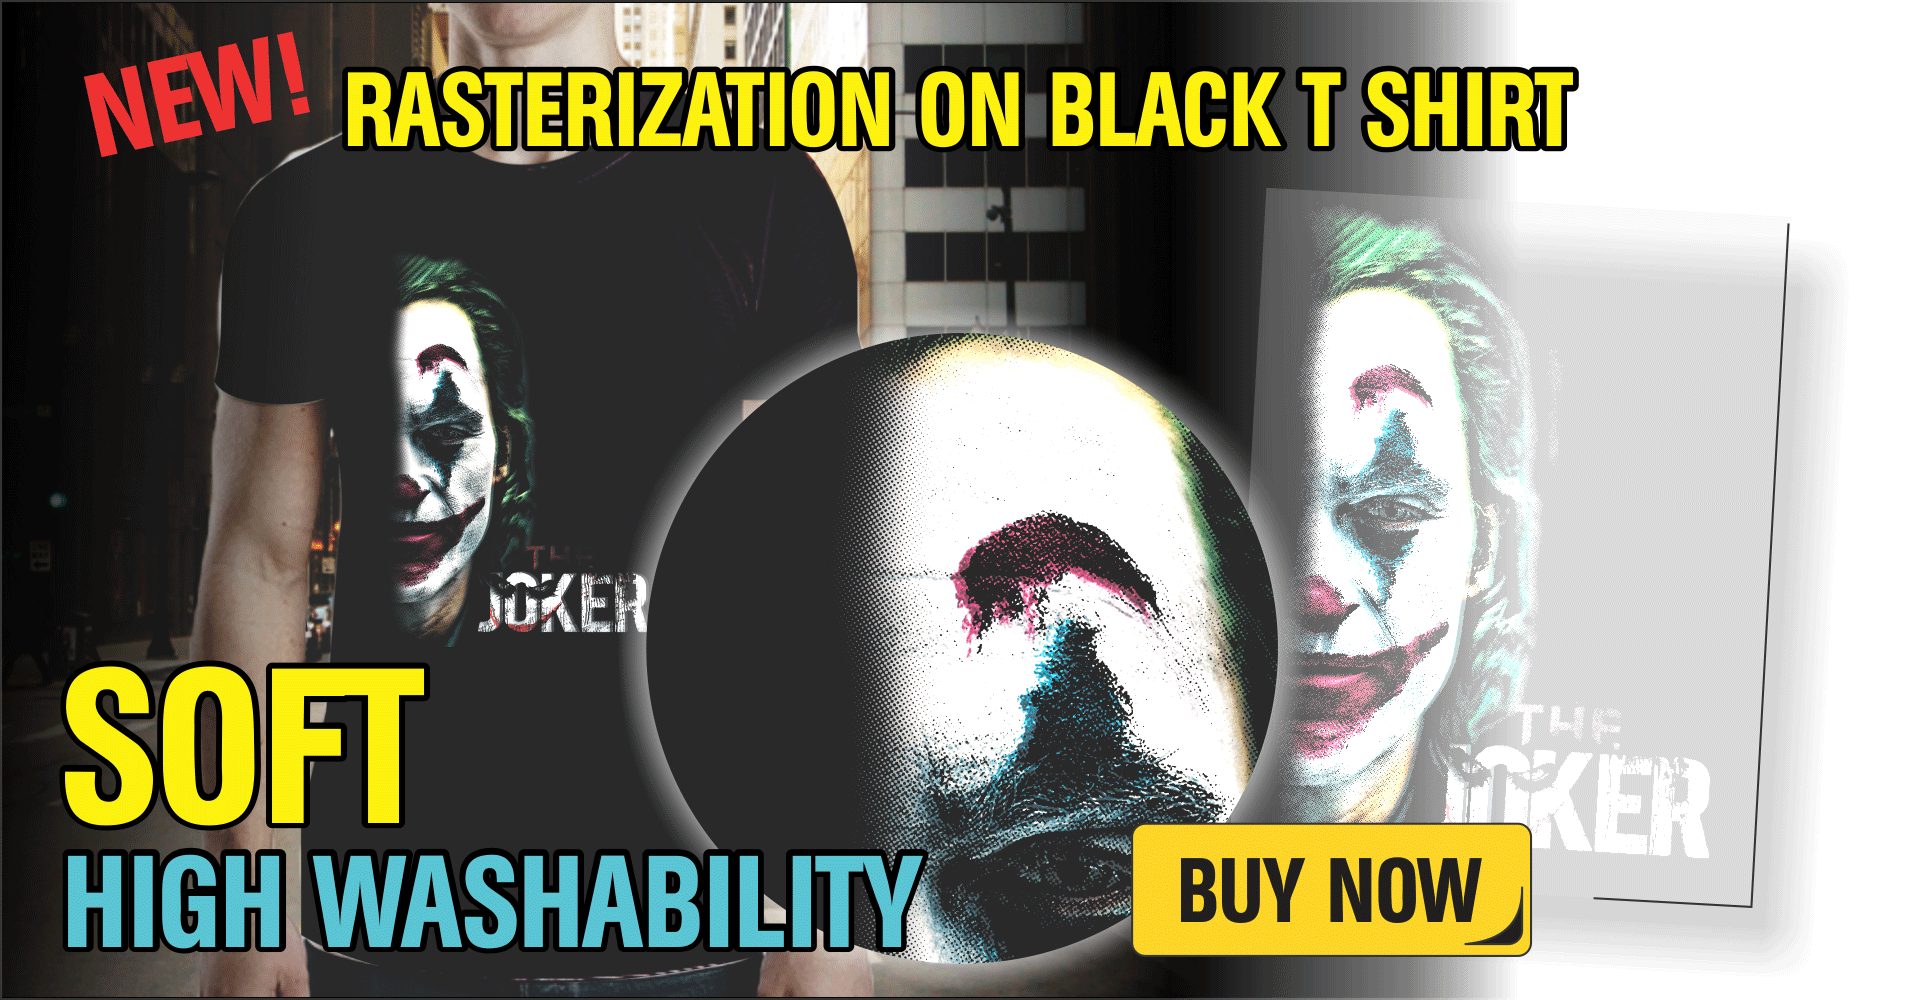 HD RASTERIZATION ON BLACK T SHIRT